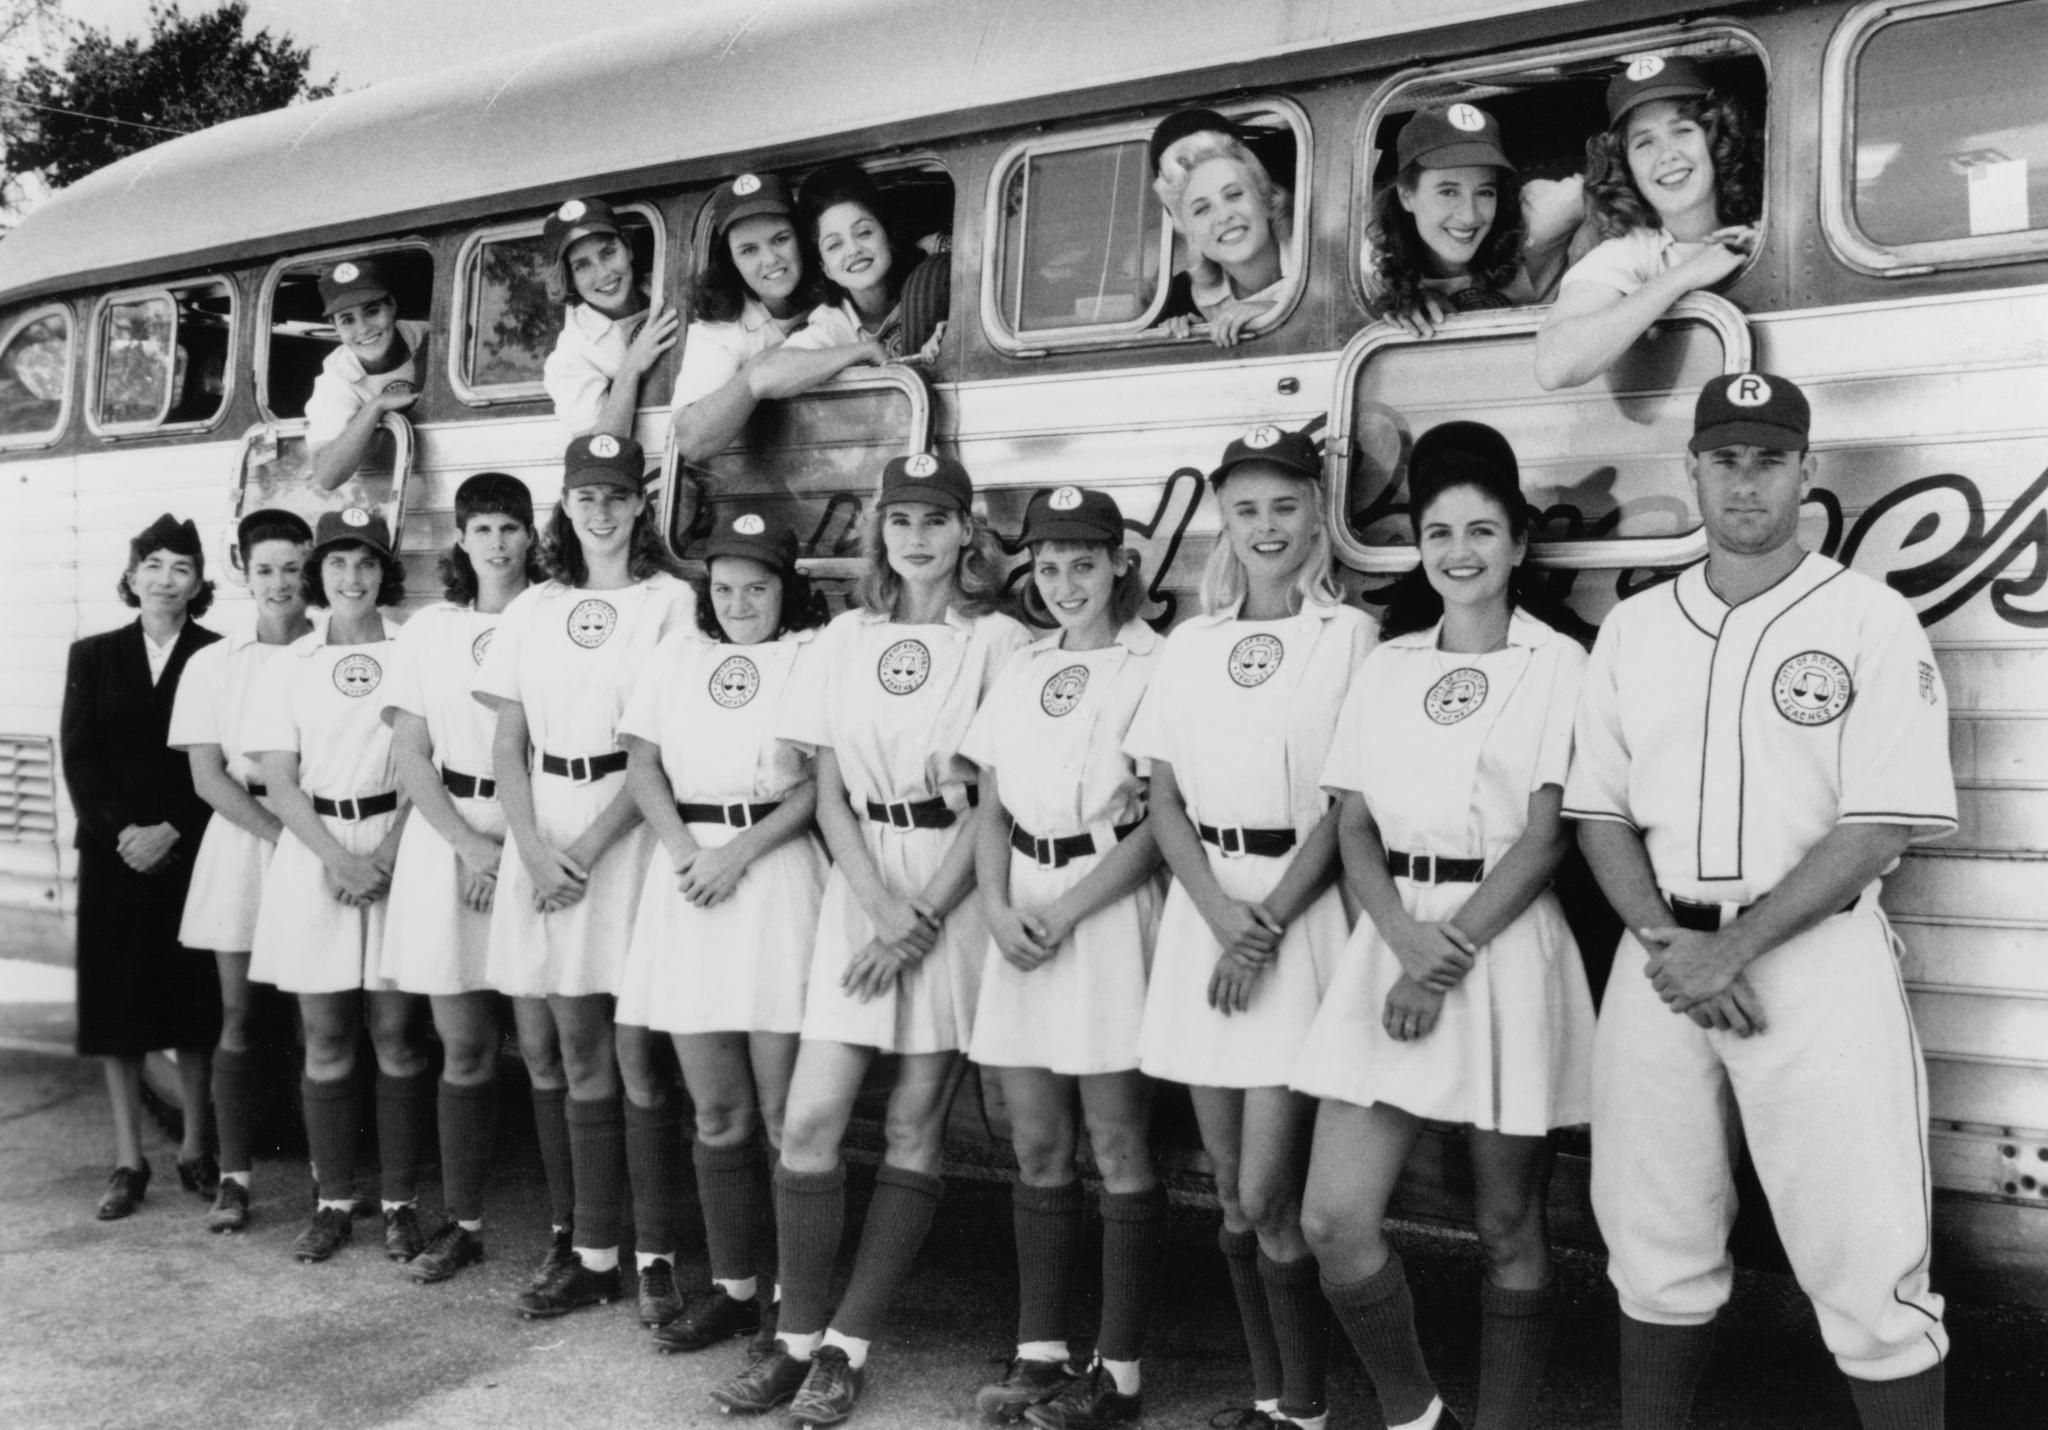 images of a league of their own - Google Search